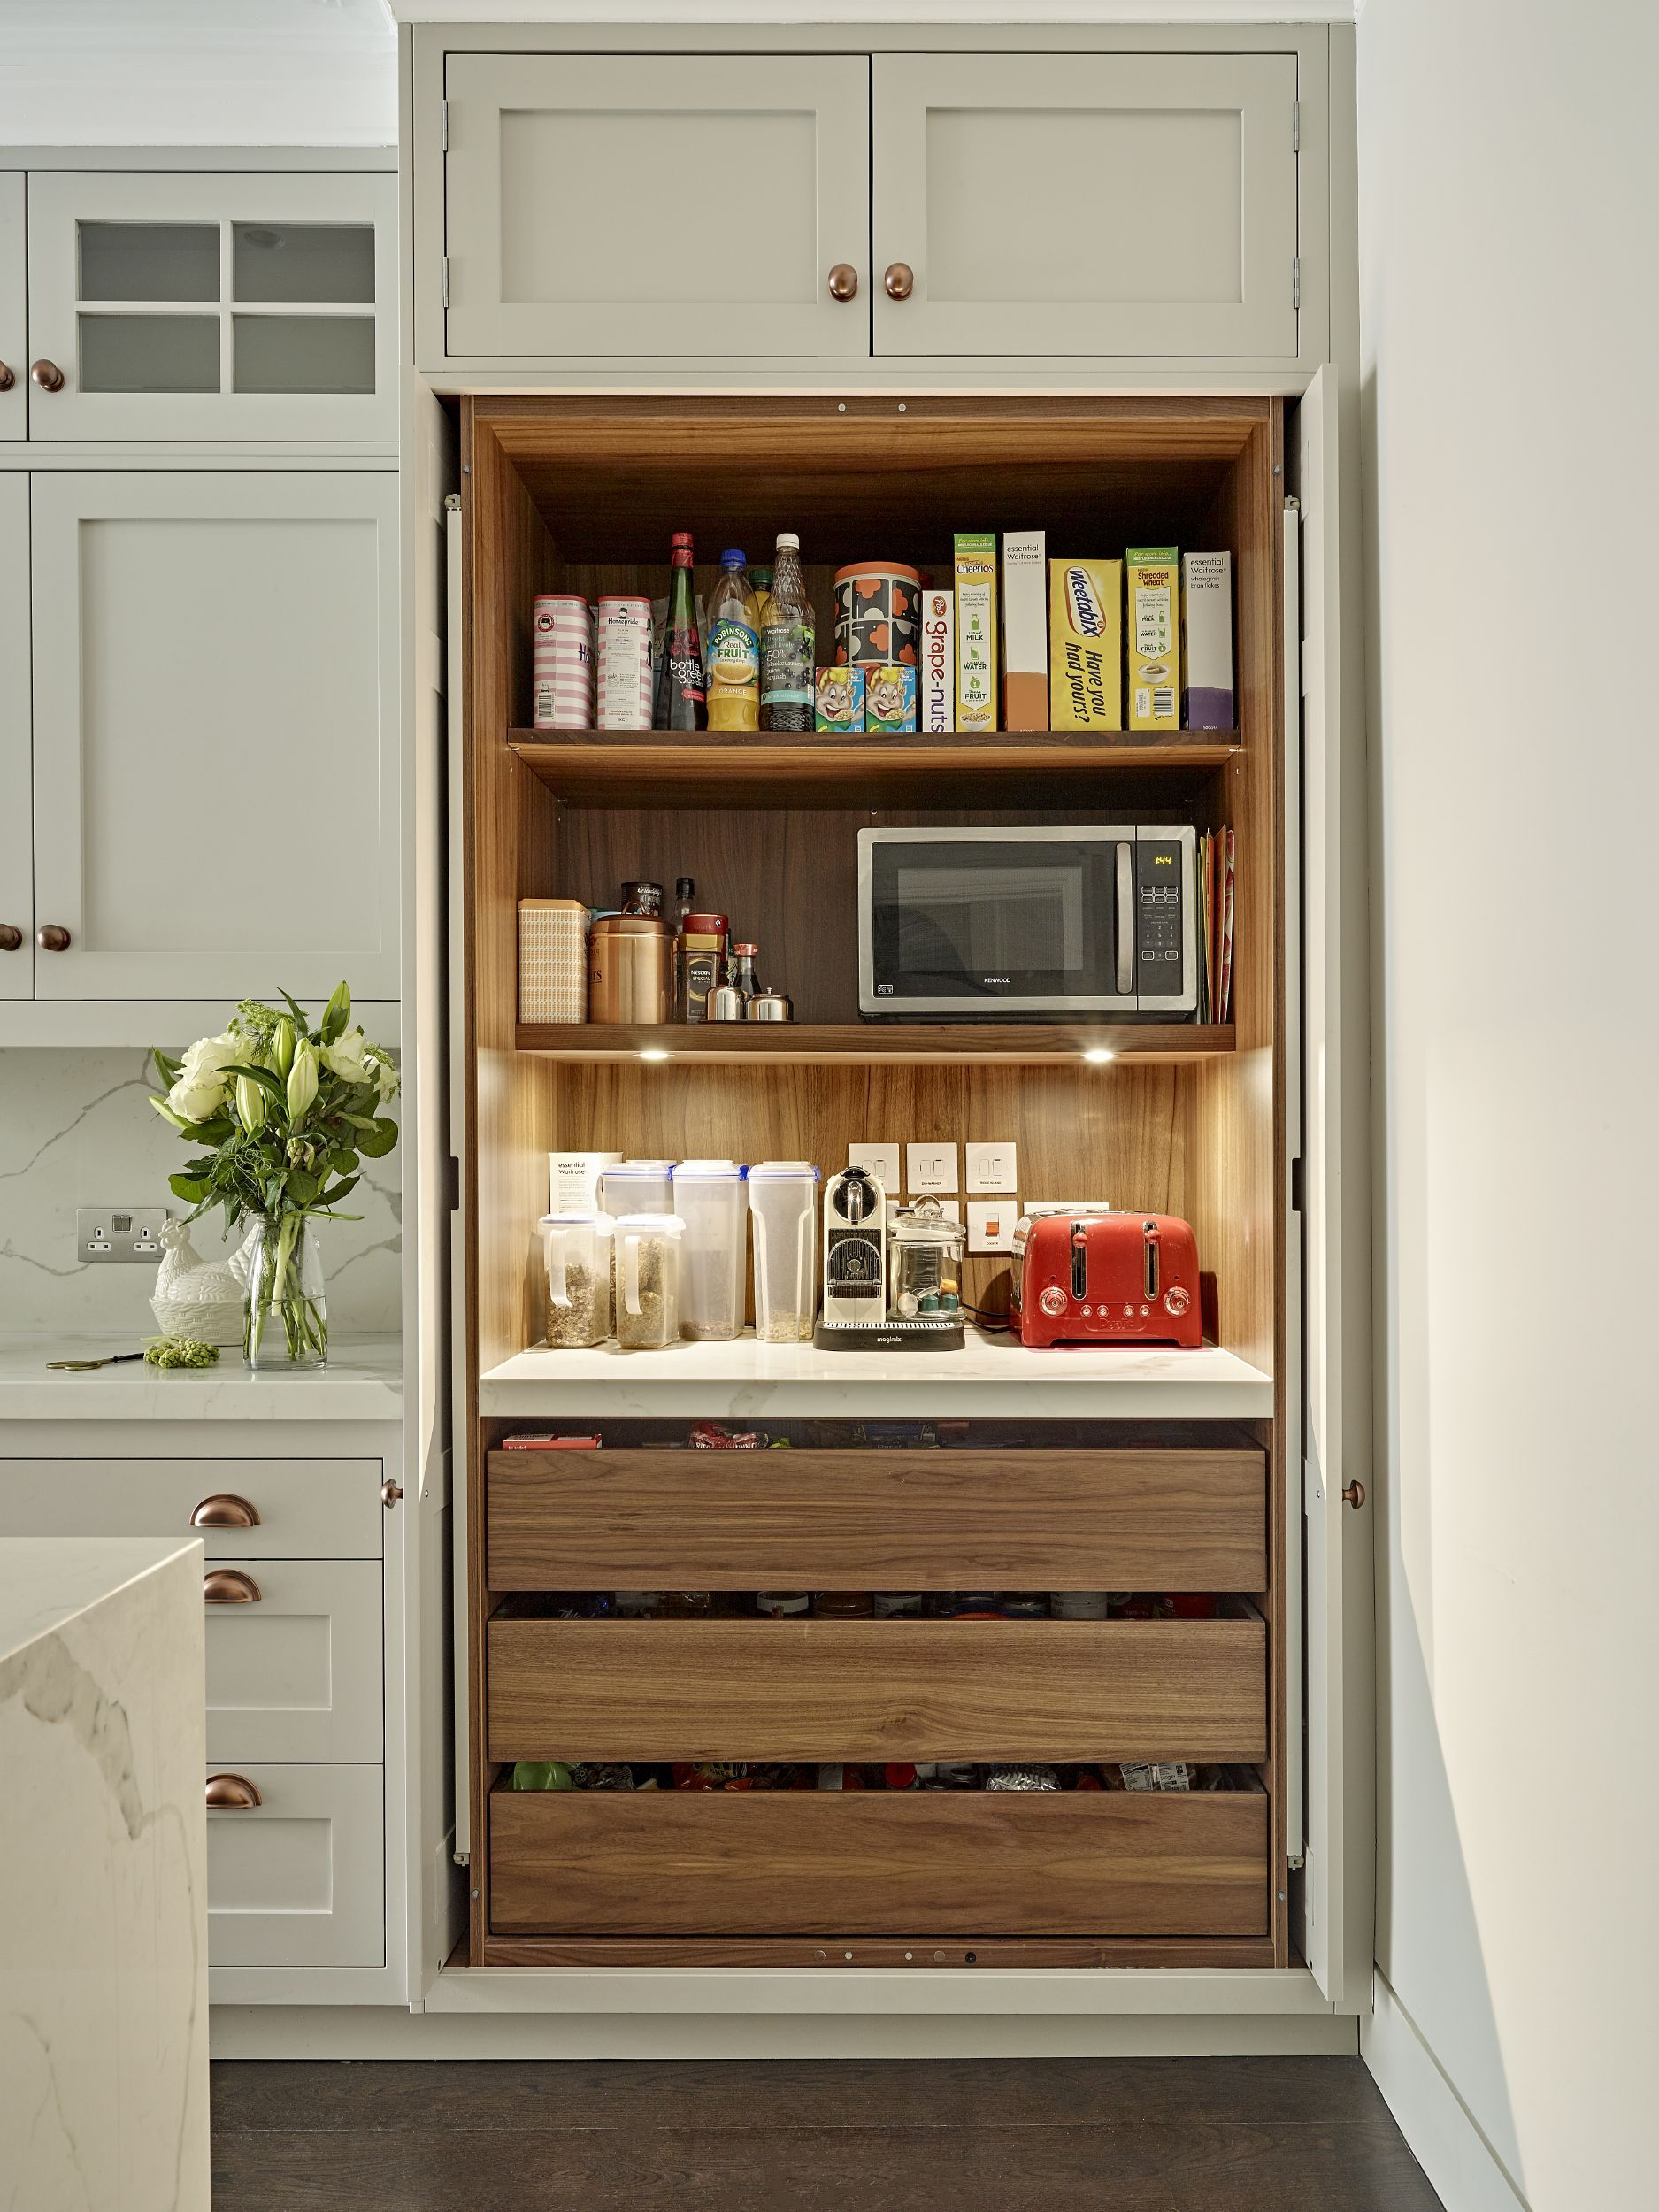 Breakfast Pantry Cabinet With Shelf Lighting Supply For Small Liances And Worktop Little Greene S French Grey Is Used On The Kitchen